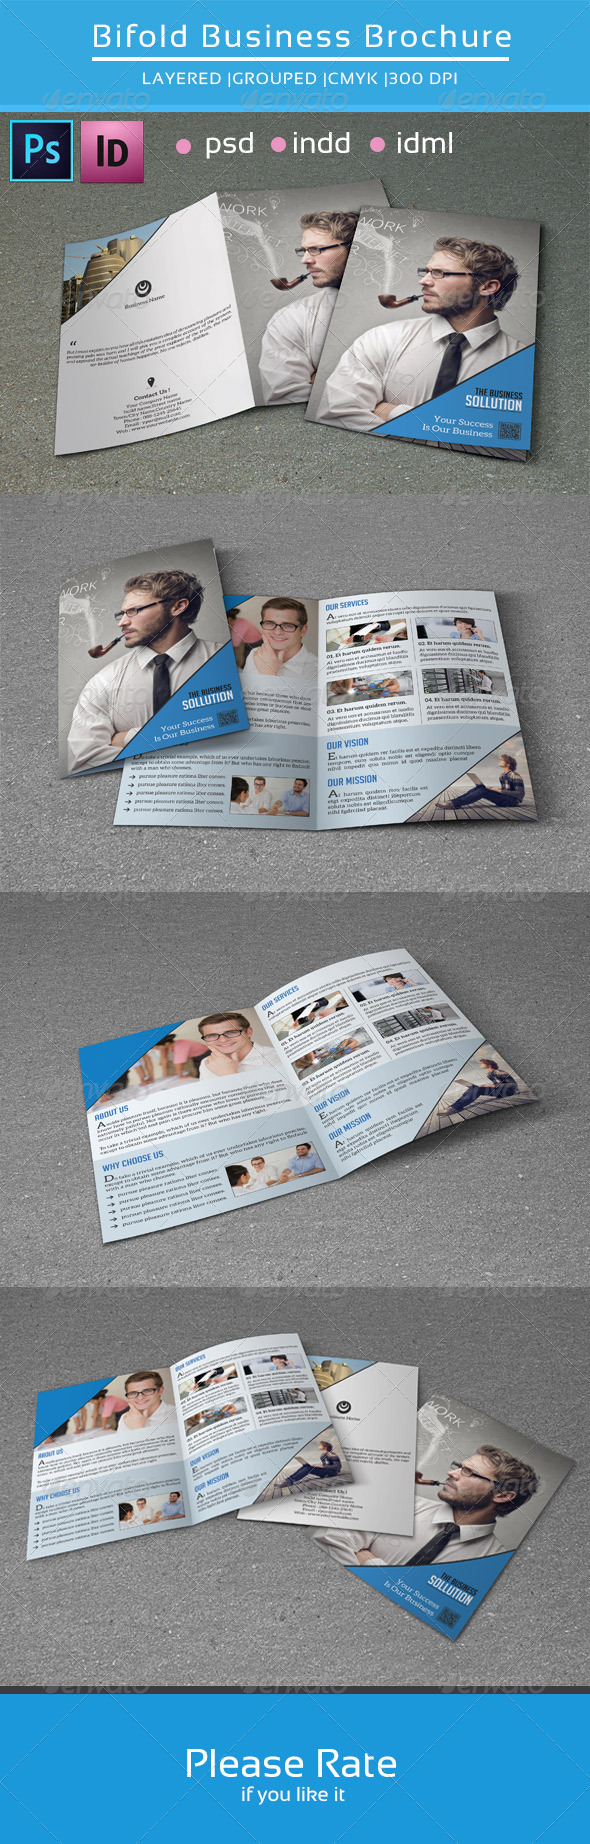 GraphicRiver Bifold business brochure v111 8582668